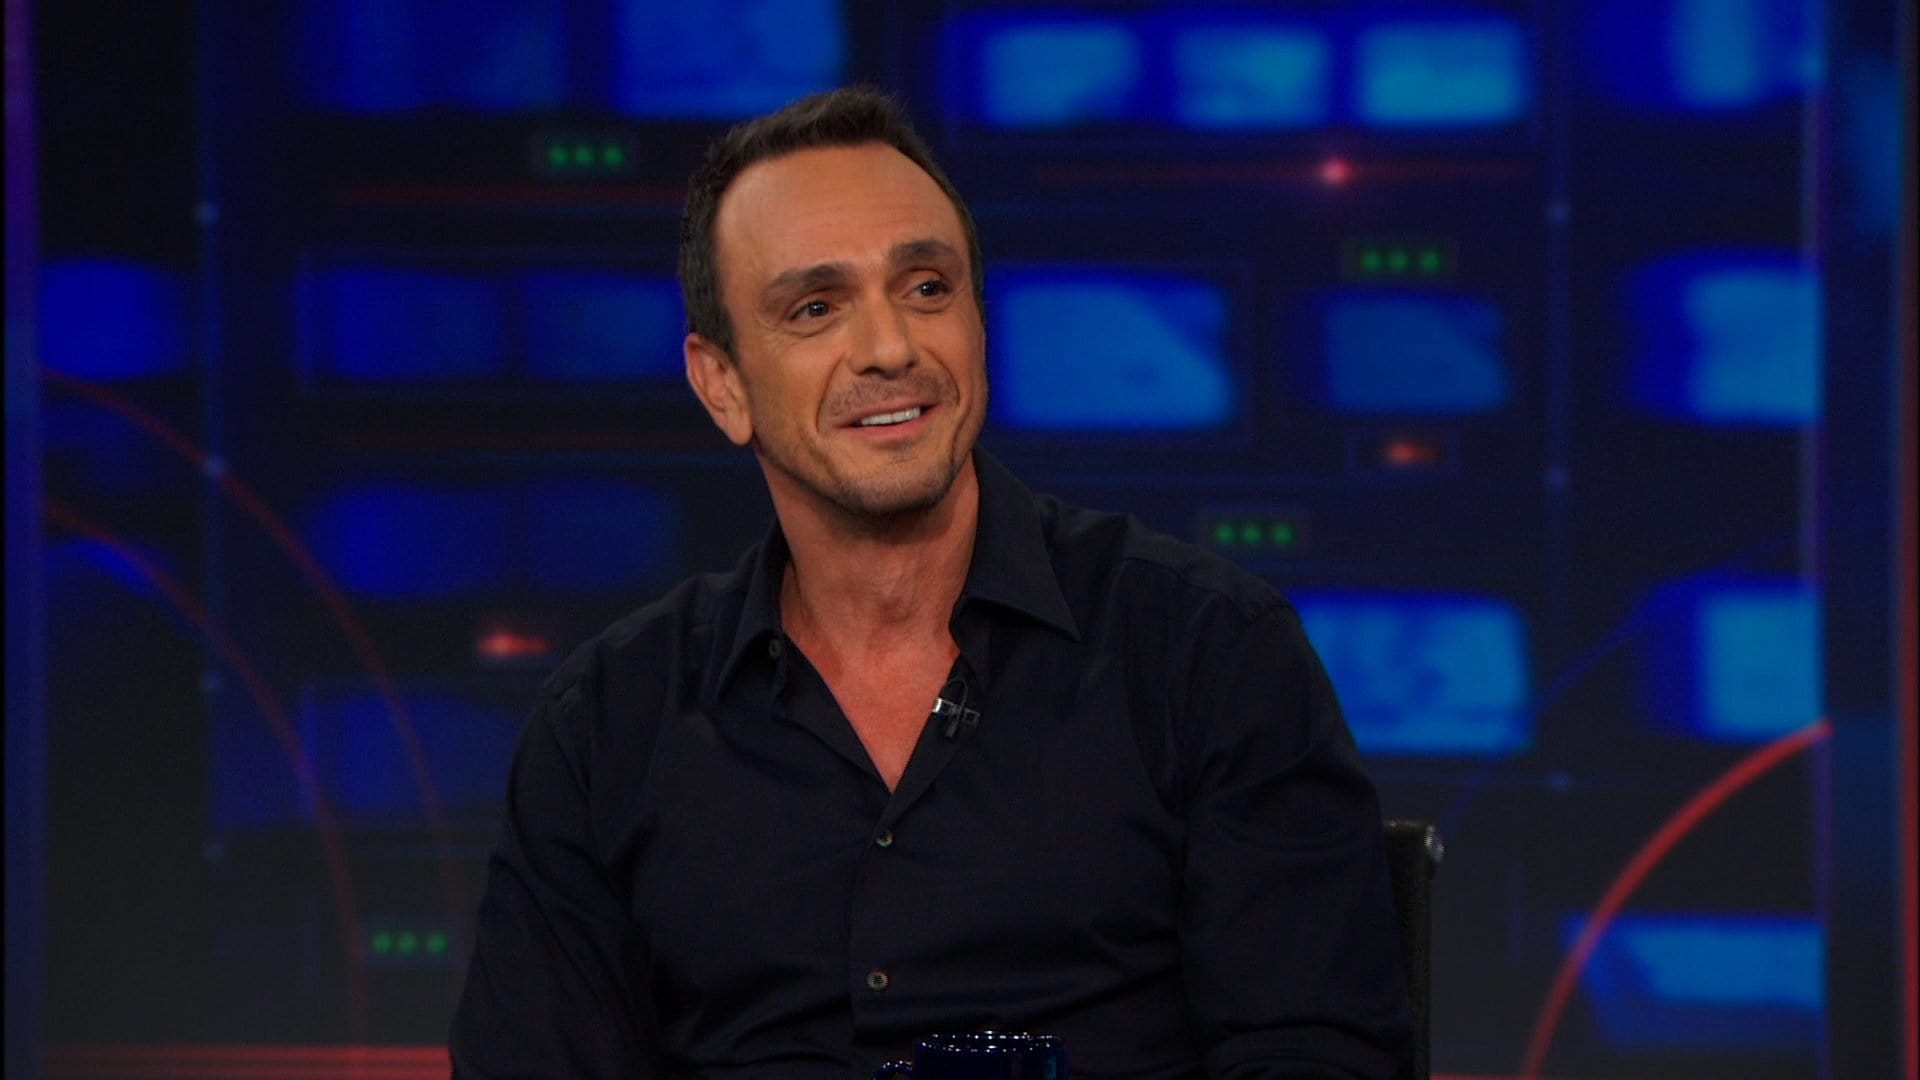 The Daily Show with Trevor Noah Season 18 :Episode 135  Hank Azaria